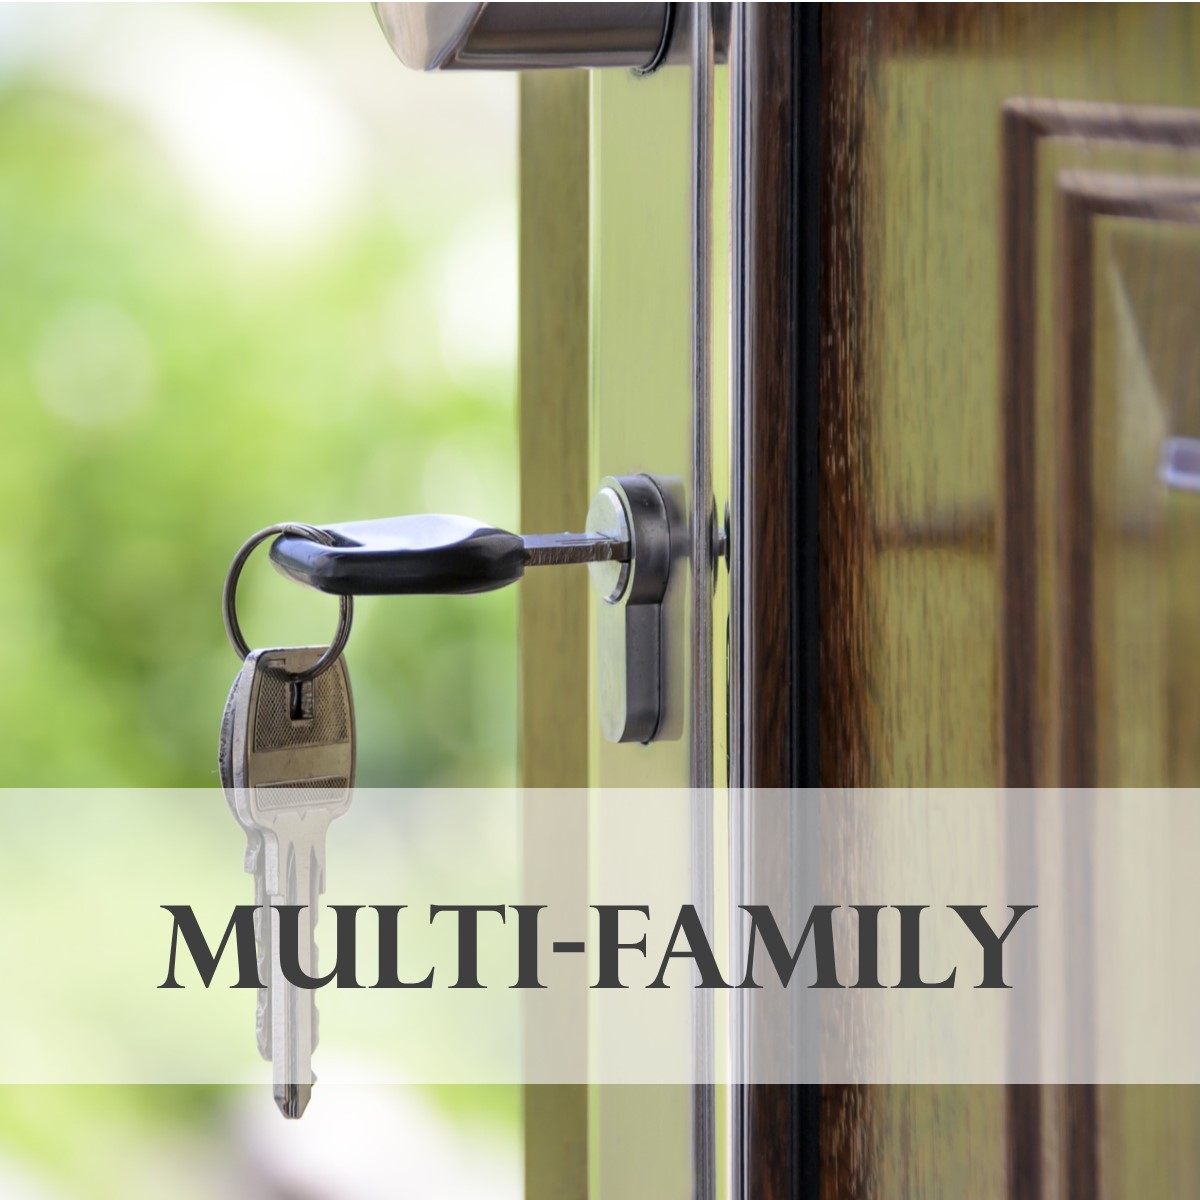 Maine Multi-Family Property Listings - real estate leader, maine homes for sale, maine real estate, maine realtors, fontaine fam